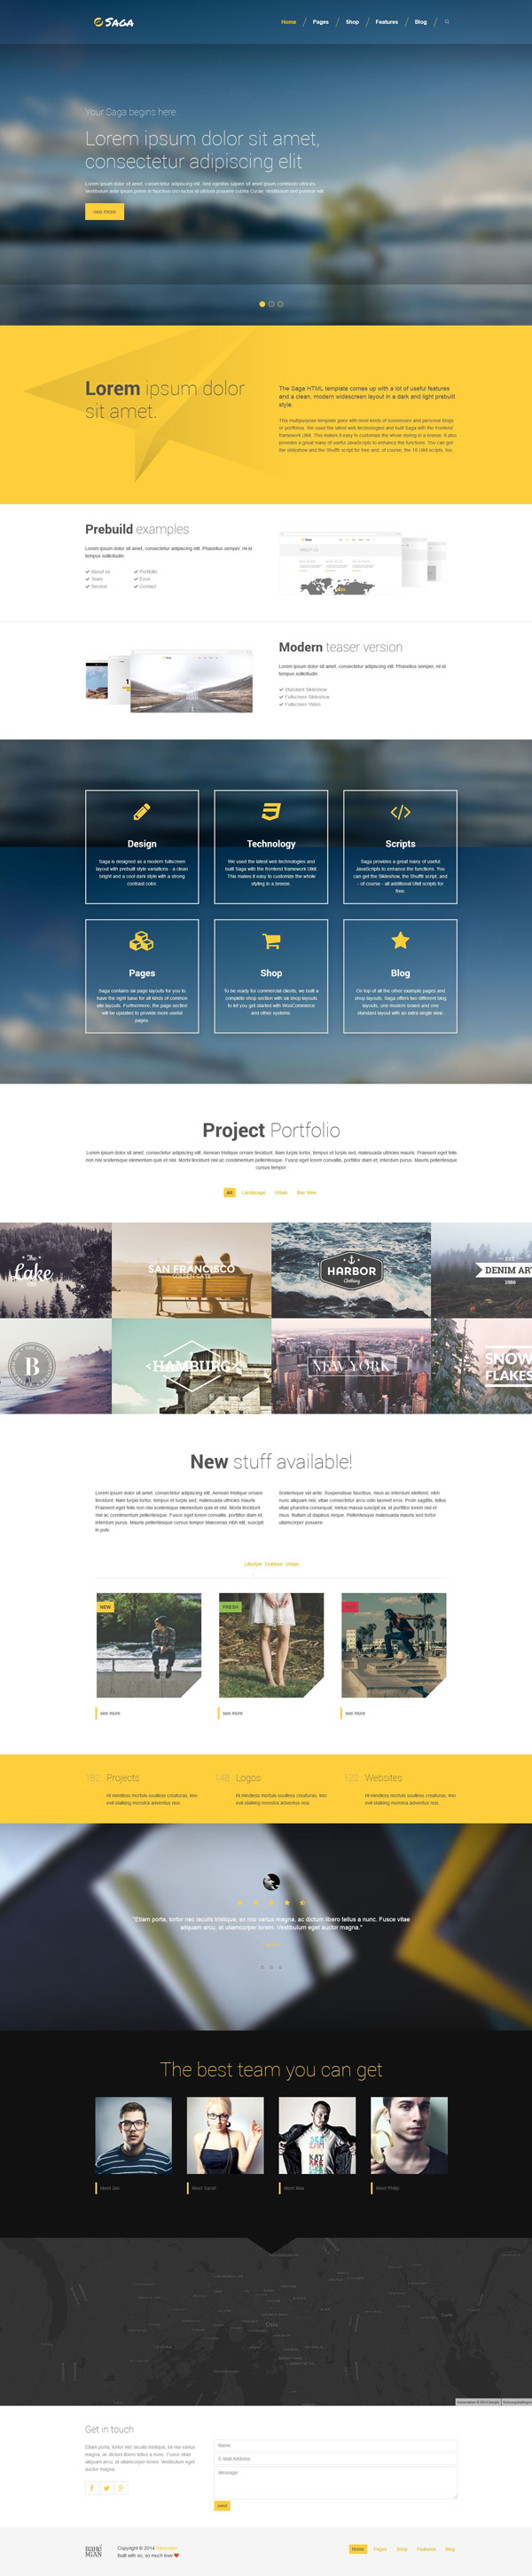 10 Responsive HTML5 One Page Website Template